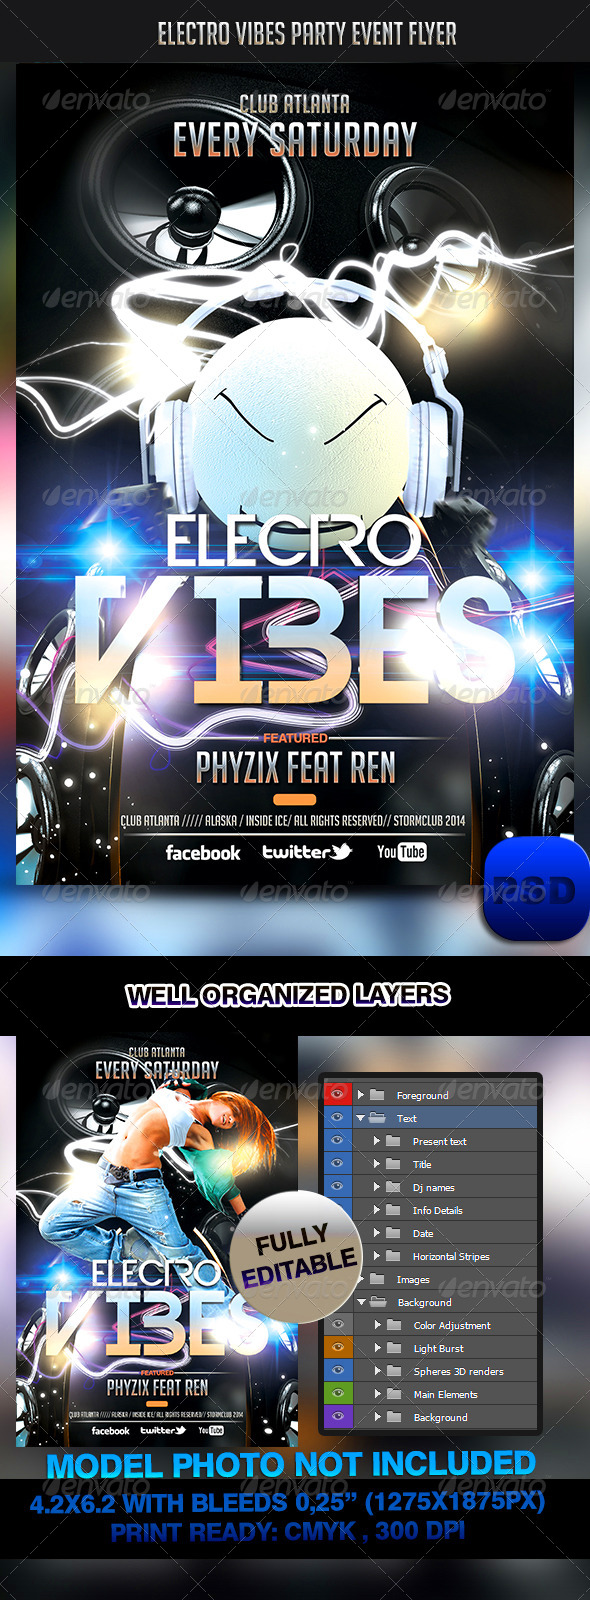 Electro Vibes Party Event Flyer - Events Flyers